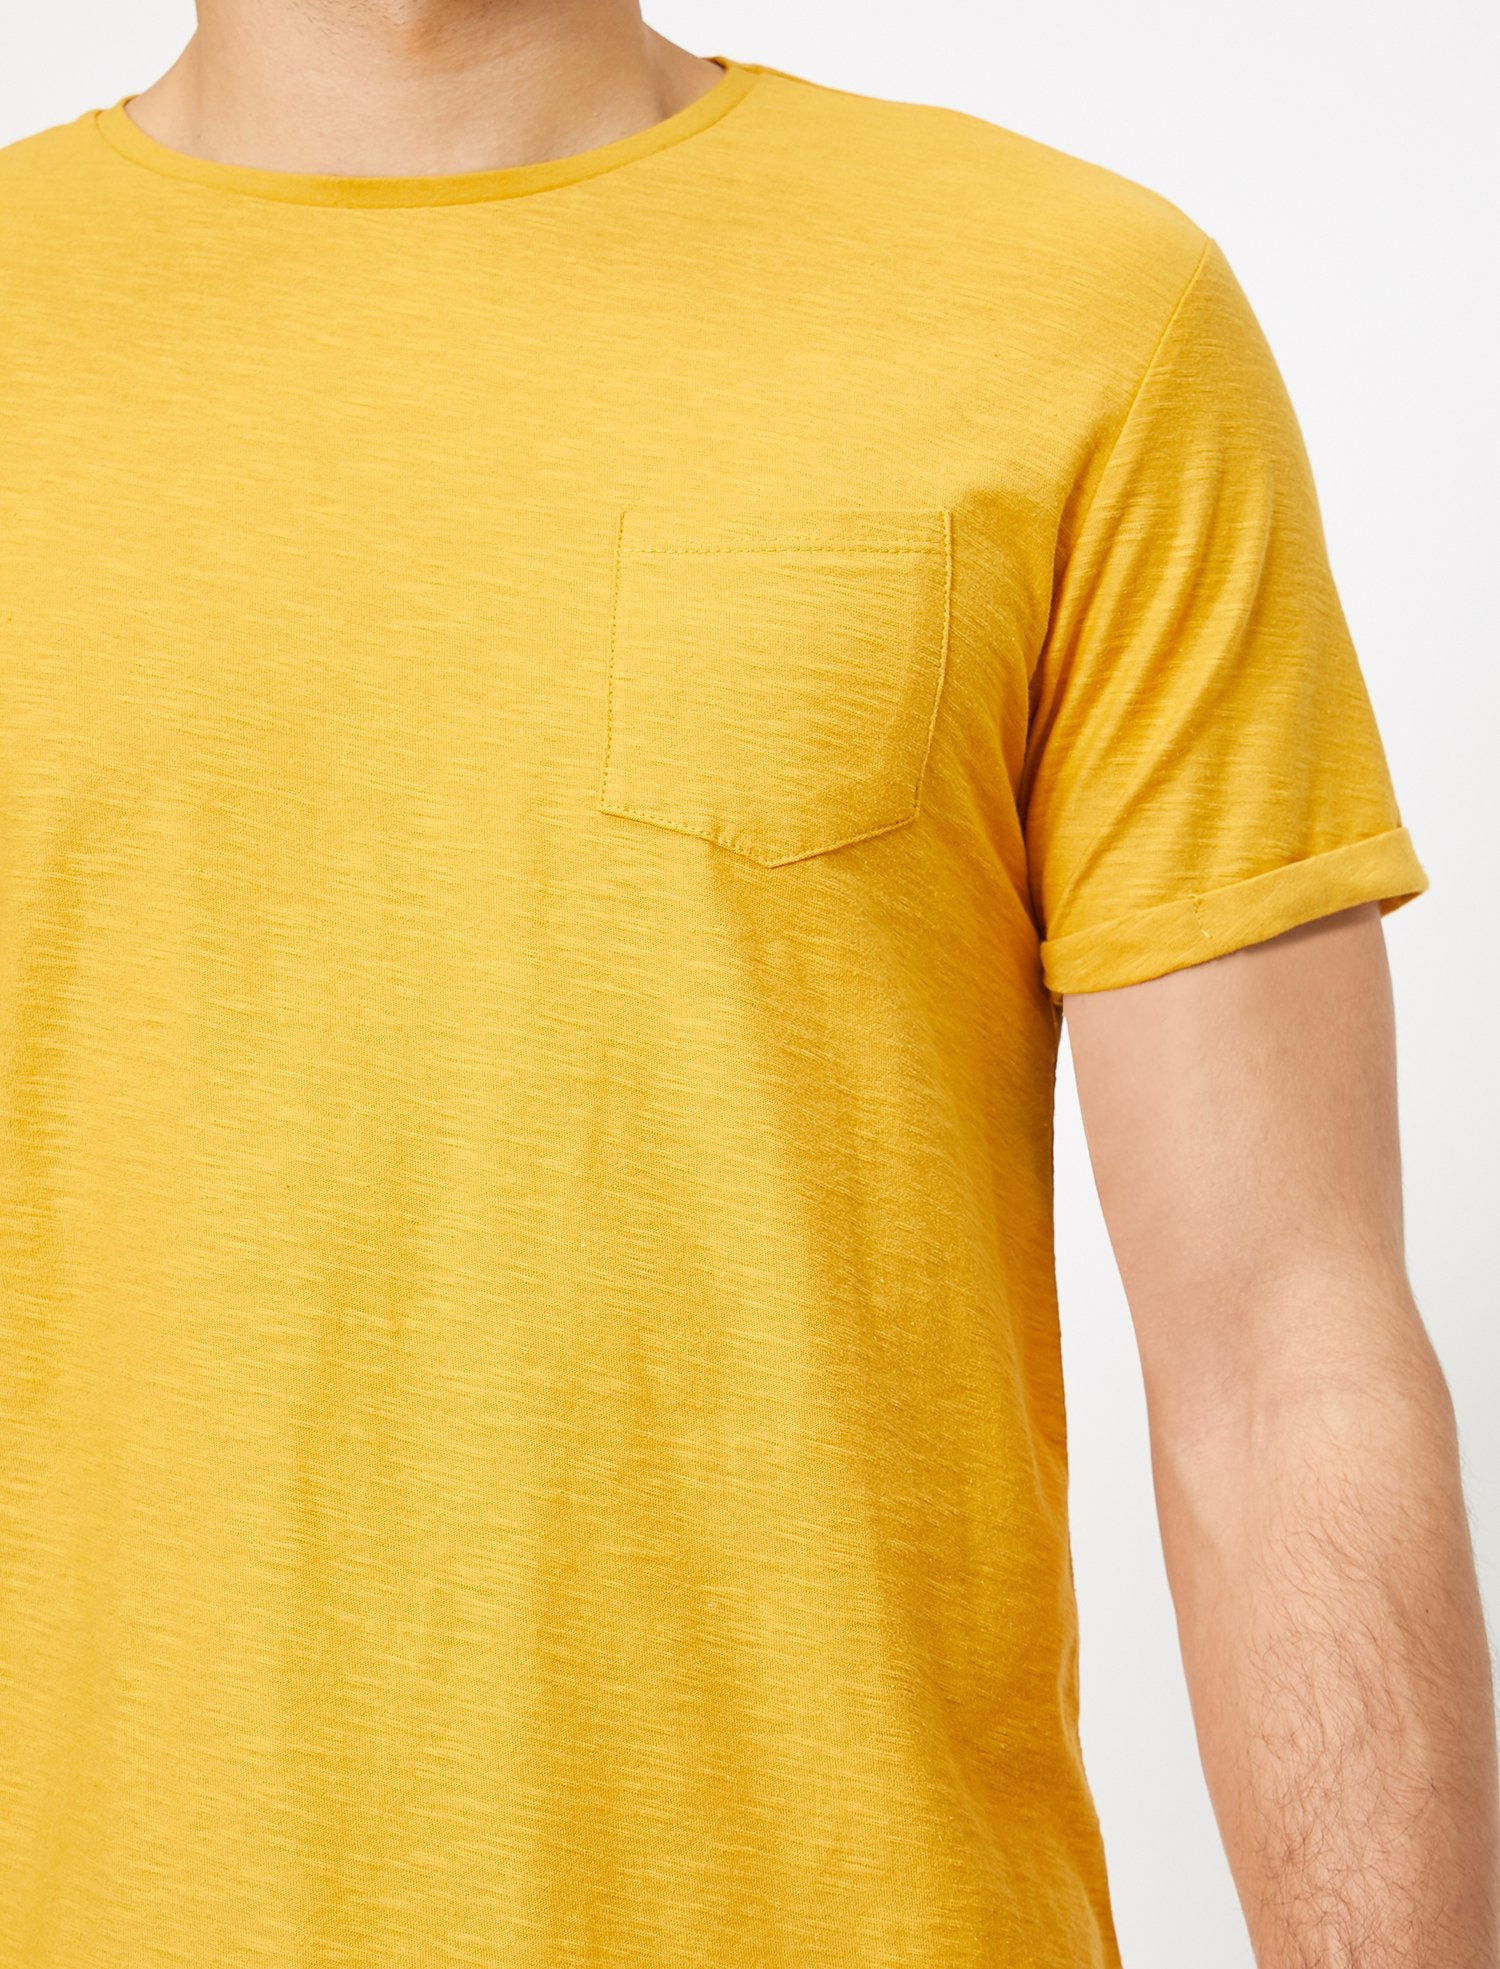 Slubbed Basic Tshirt in Mustard